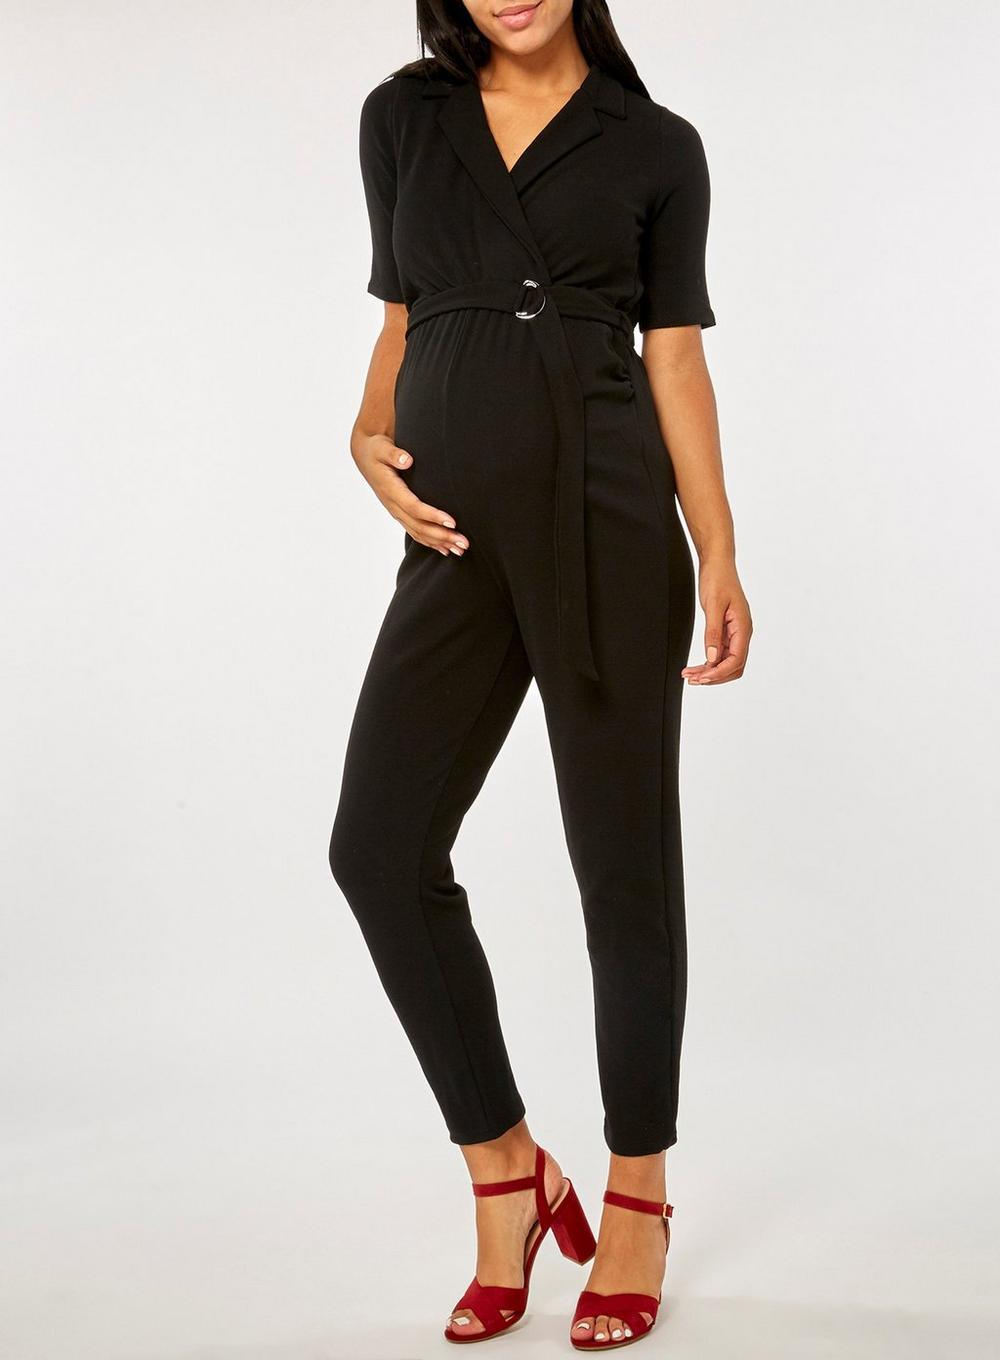 b61007df3e Dorothy Perkins Maternity Black Tux Wrap Jumpsuit in Black - Lyst